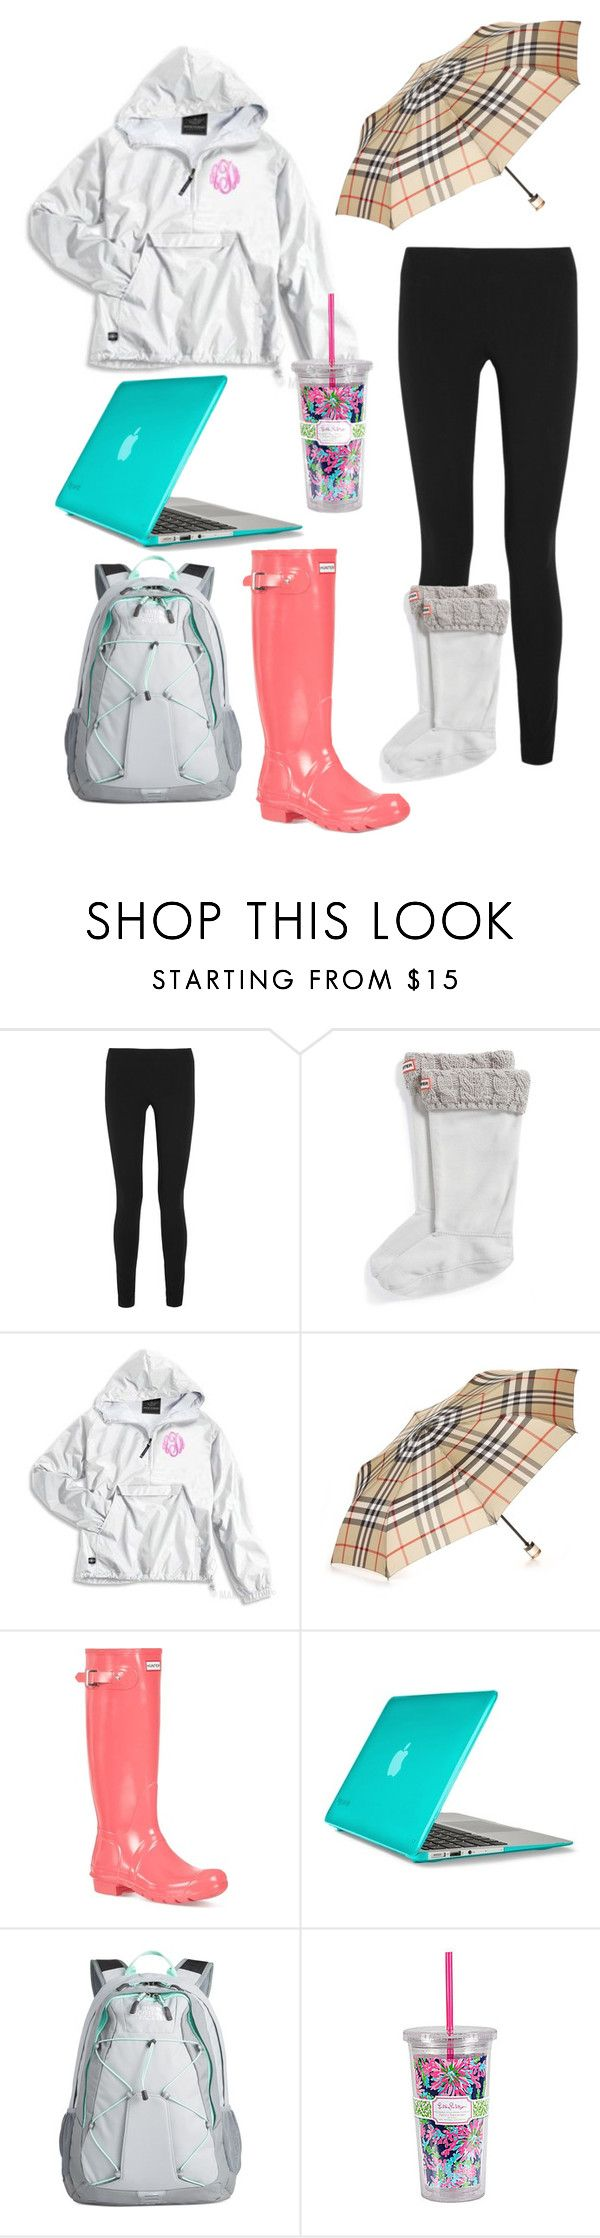 """""""School on a rainy day"""" by clhartsell9 ❤ liked on Polyvore featuring Helmut Lang, Hunter, Burberry, Speck, The North Face and Lilly Pulitzer"""